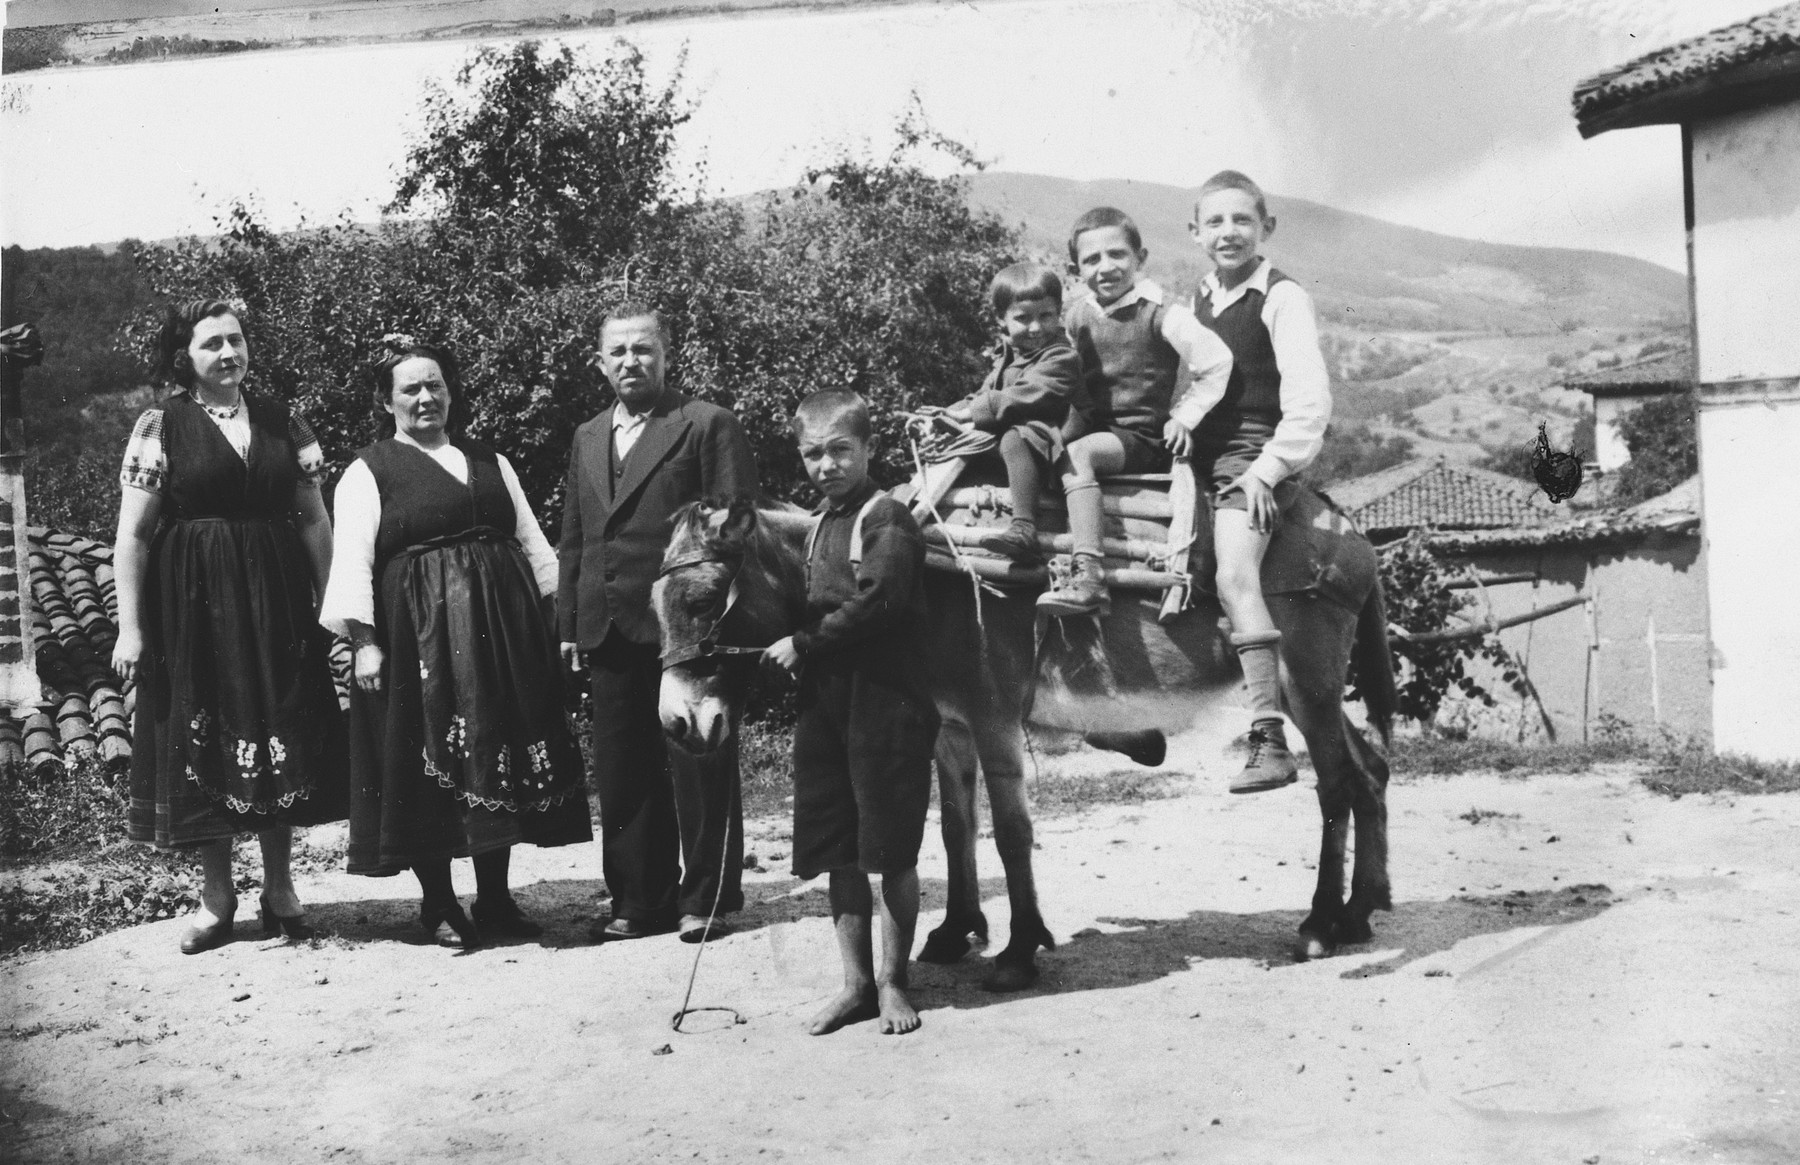 The Tchitchekik family poses with local villagers in the village where they are spending their summer vacation.  Gisela Tchitchekik is on the far left.  Her sons, Emanuel and Yitzhak, share a donkey ride with another child.